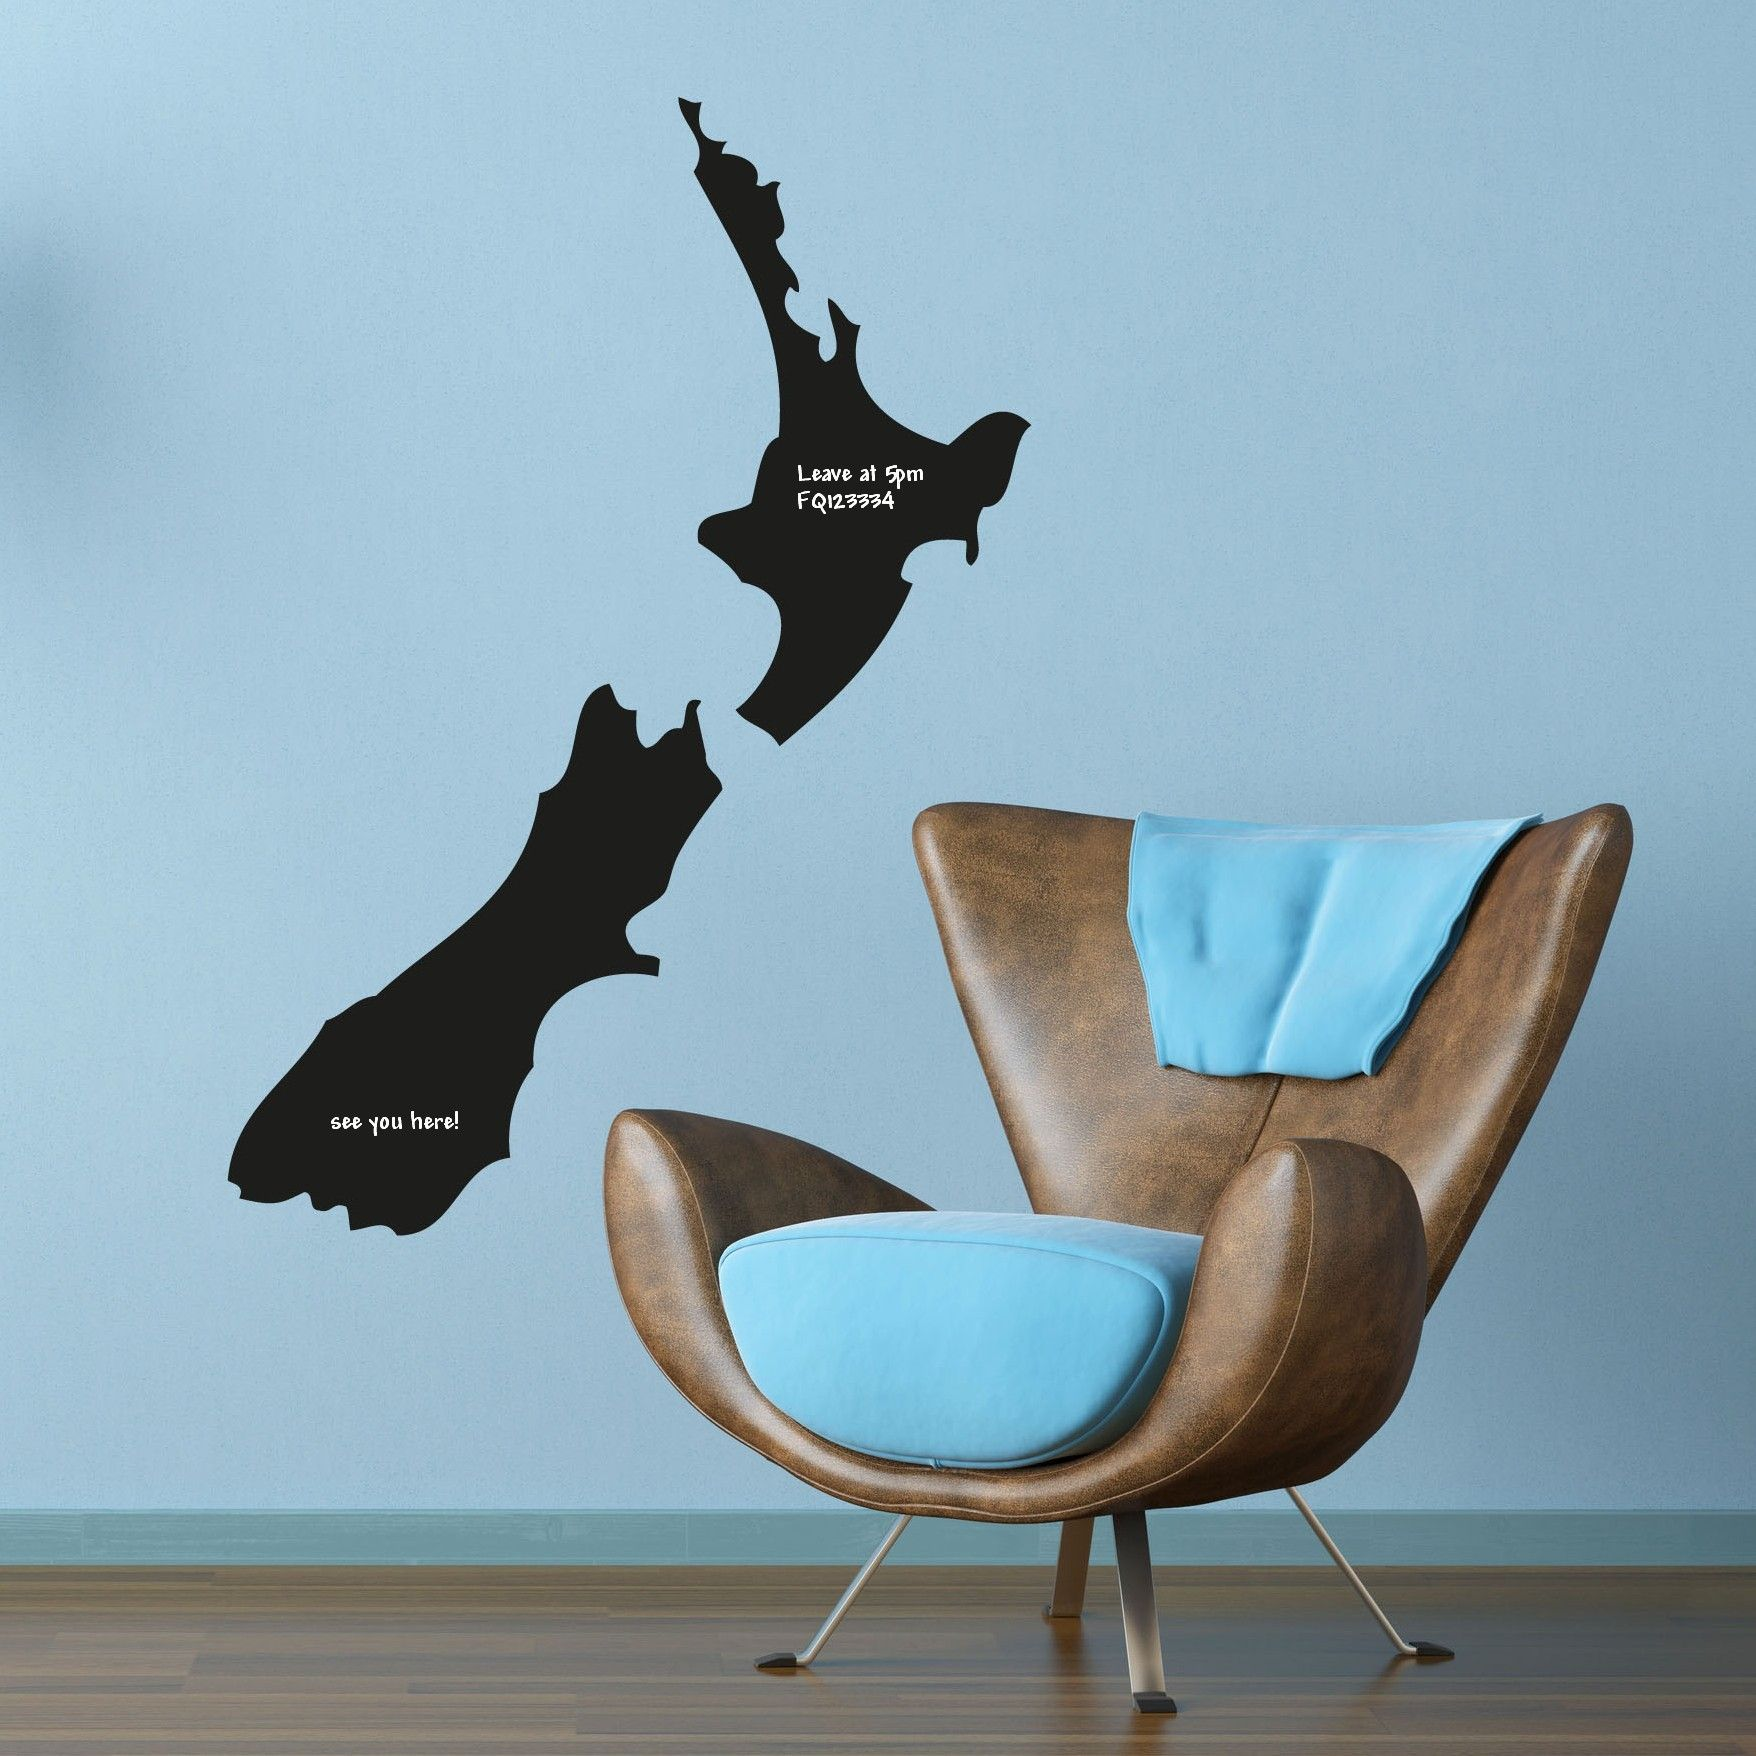 Httpfunkygiftsbig nz ki great wall stickers find this pin and more on great wall stickers decals nz kiwiana map gumiabroncs Images